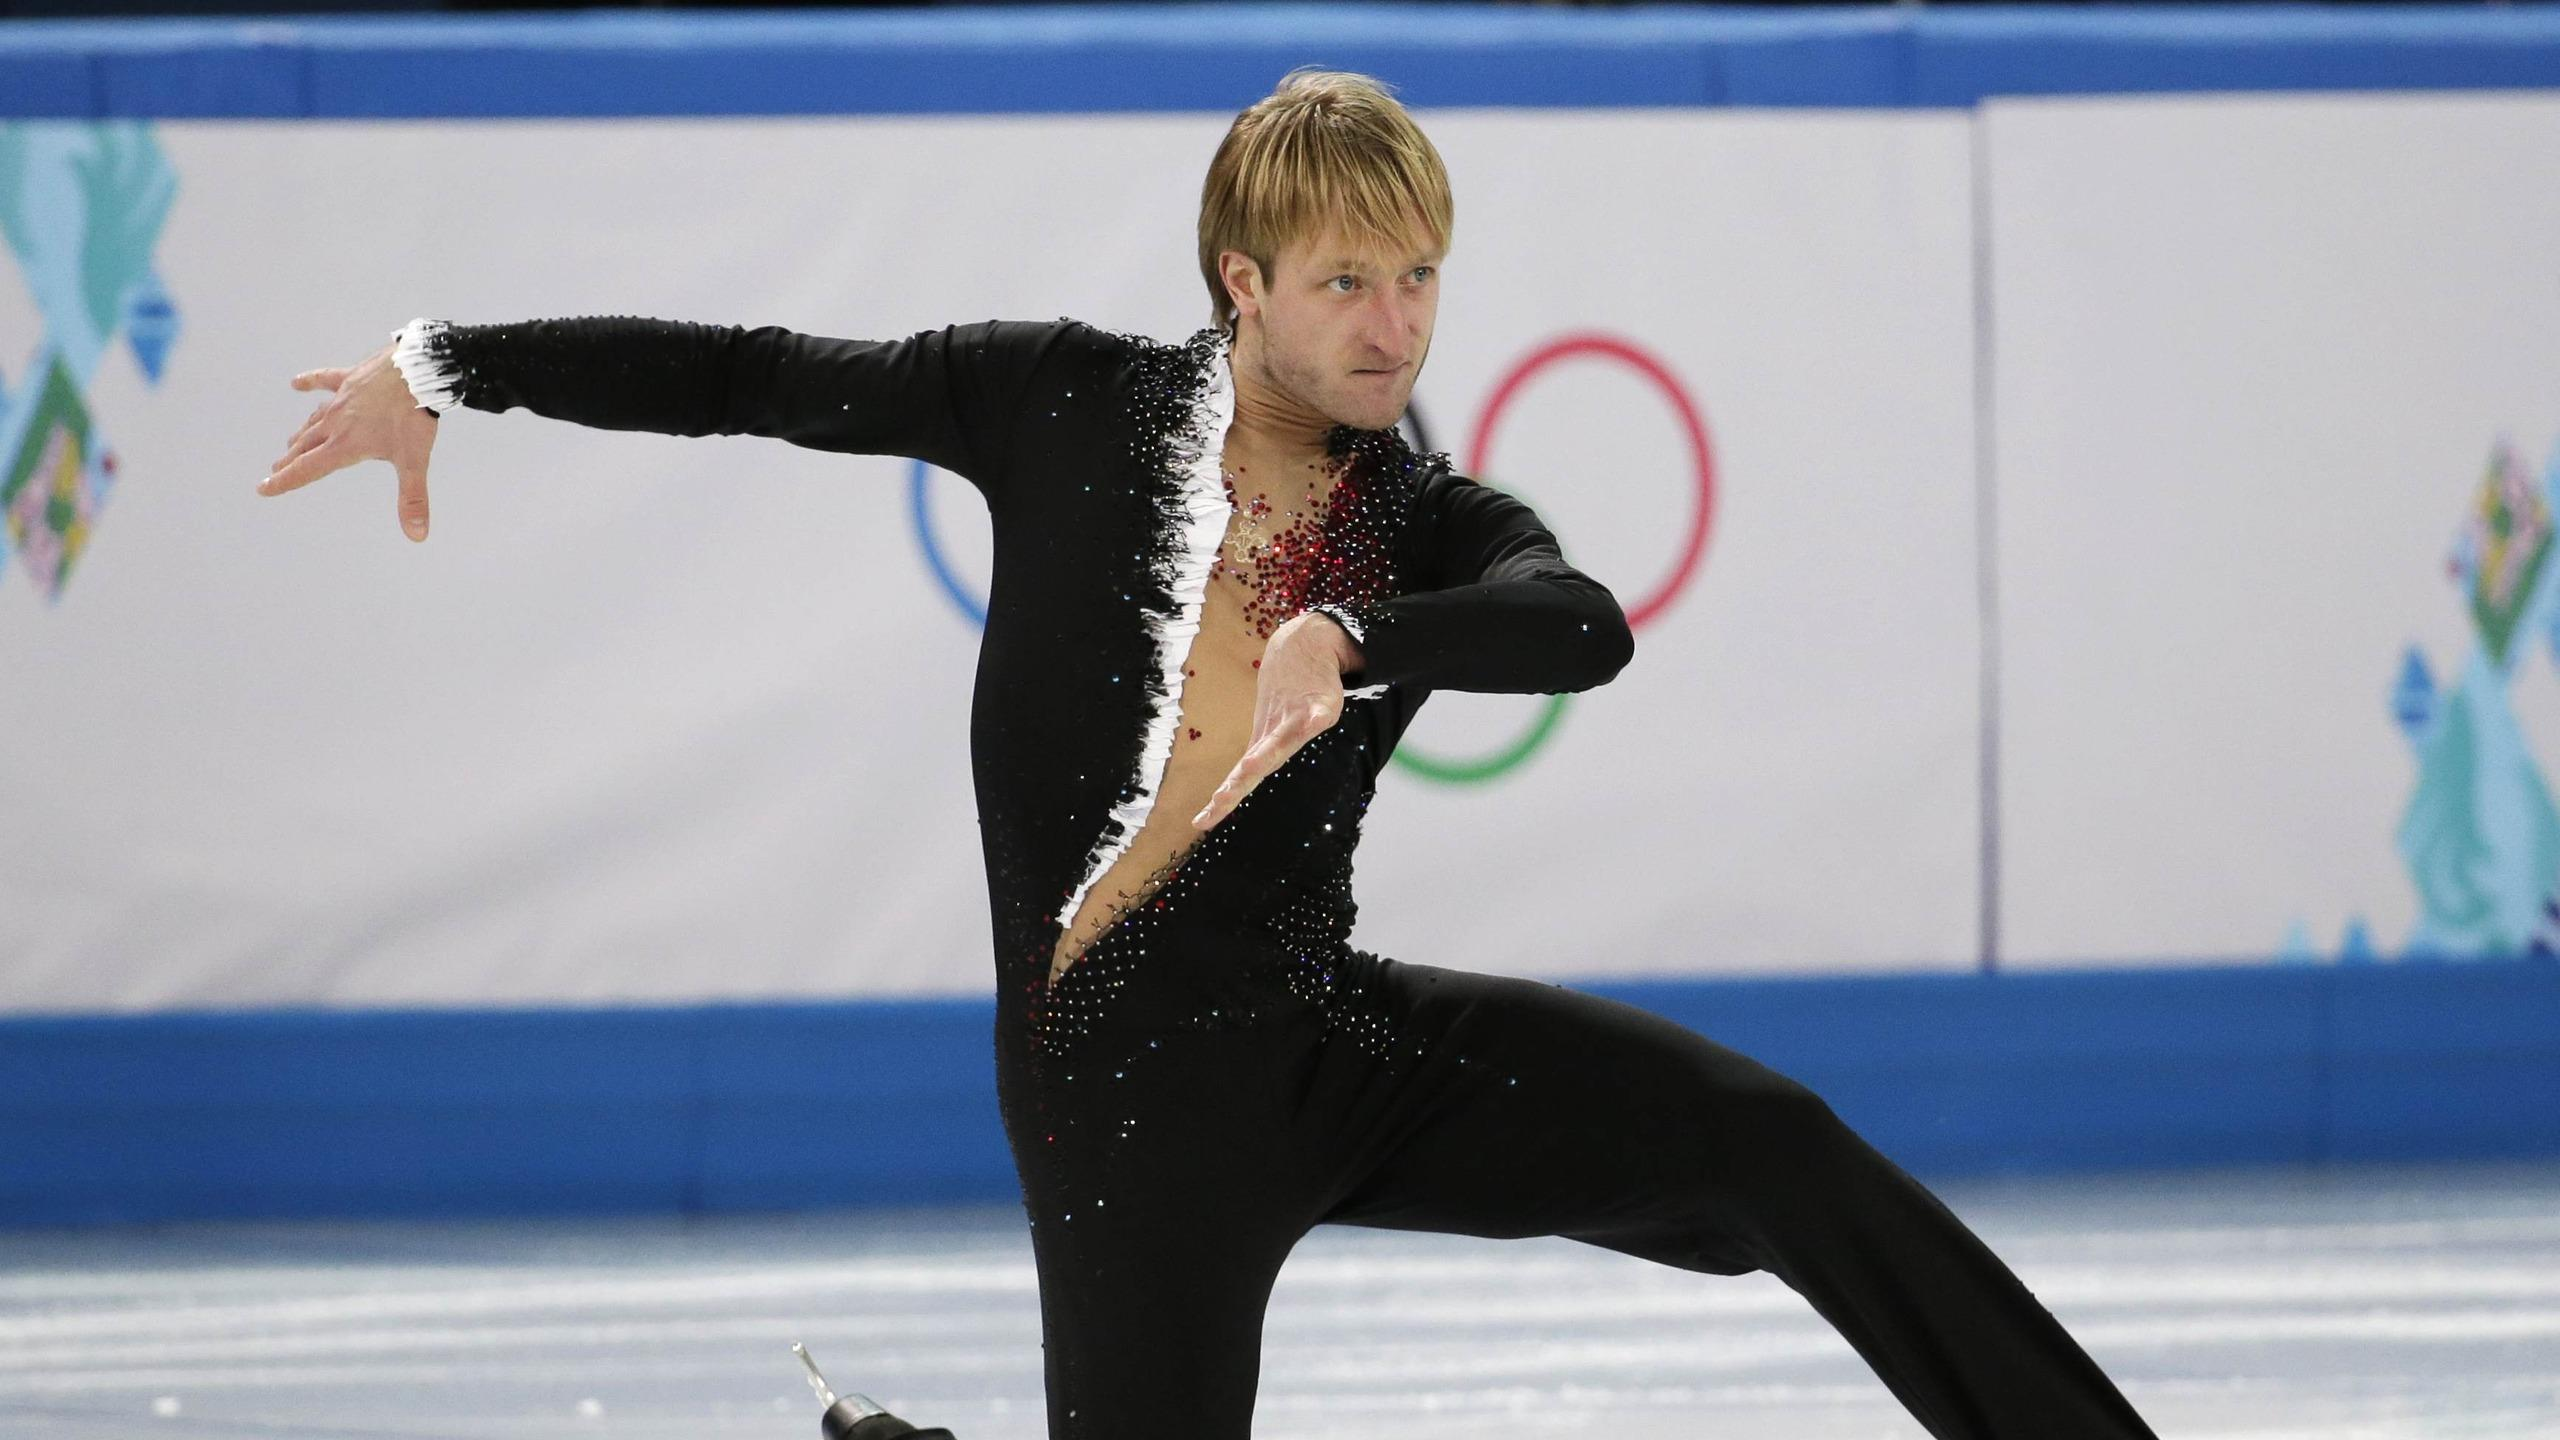 Download wallpapers 2560x1440 plushenko, figure skating, olympics